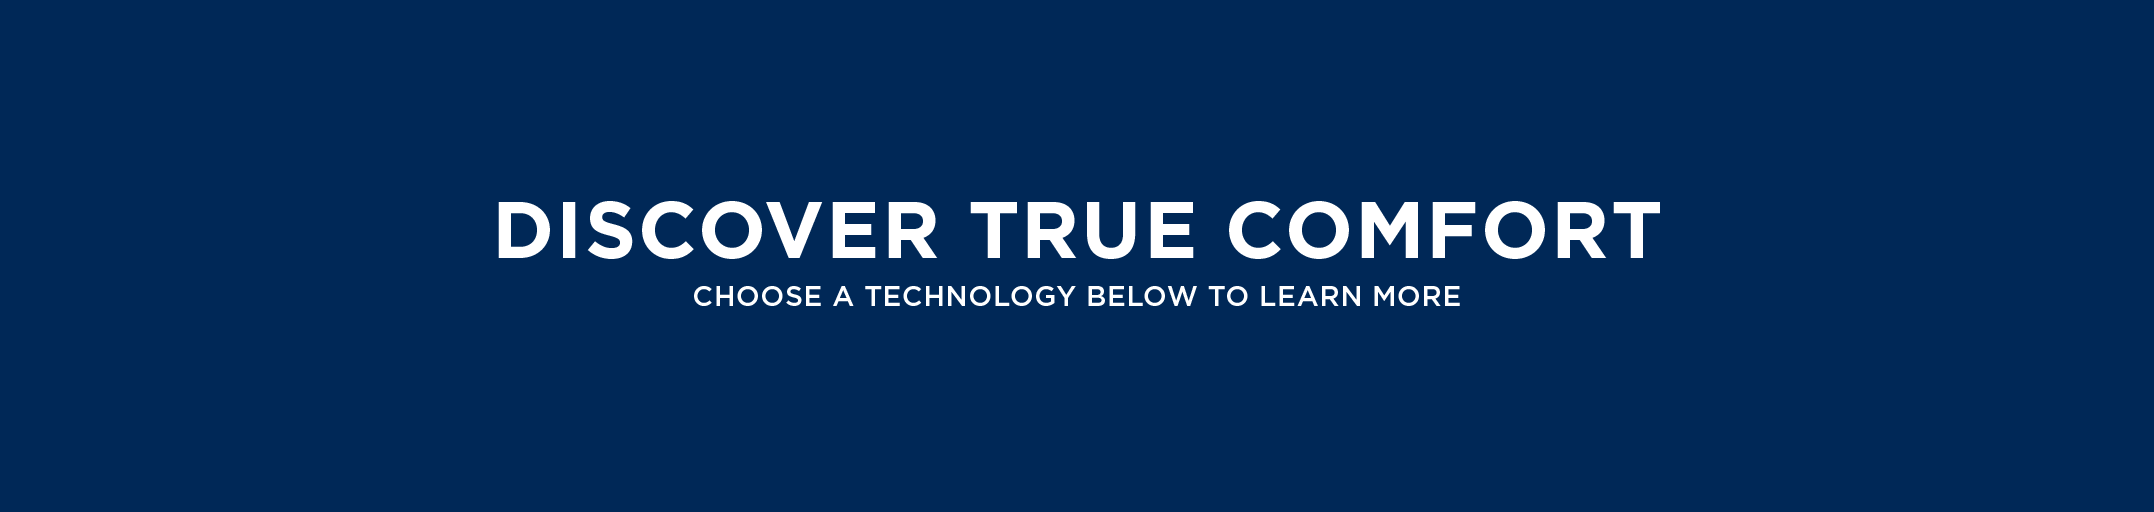 Discover True Comfort Choose A Technology Below To Learn